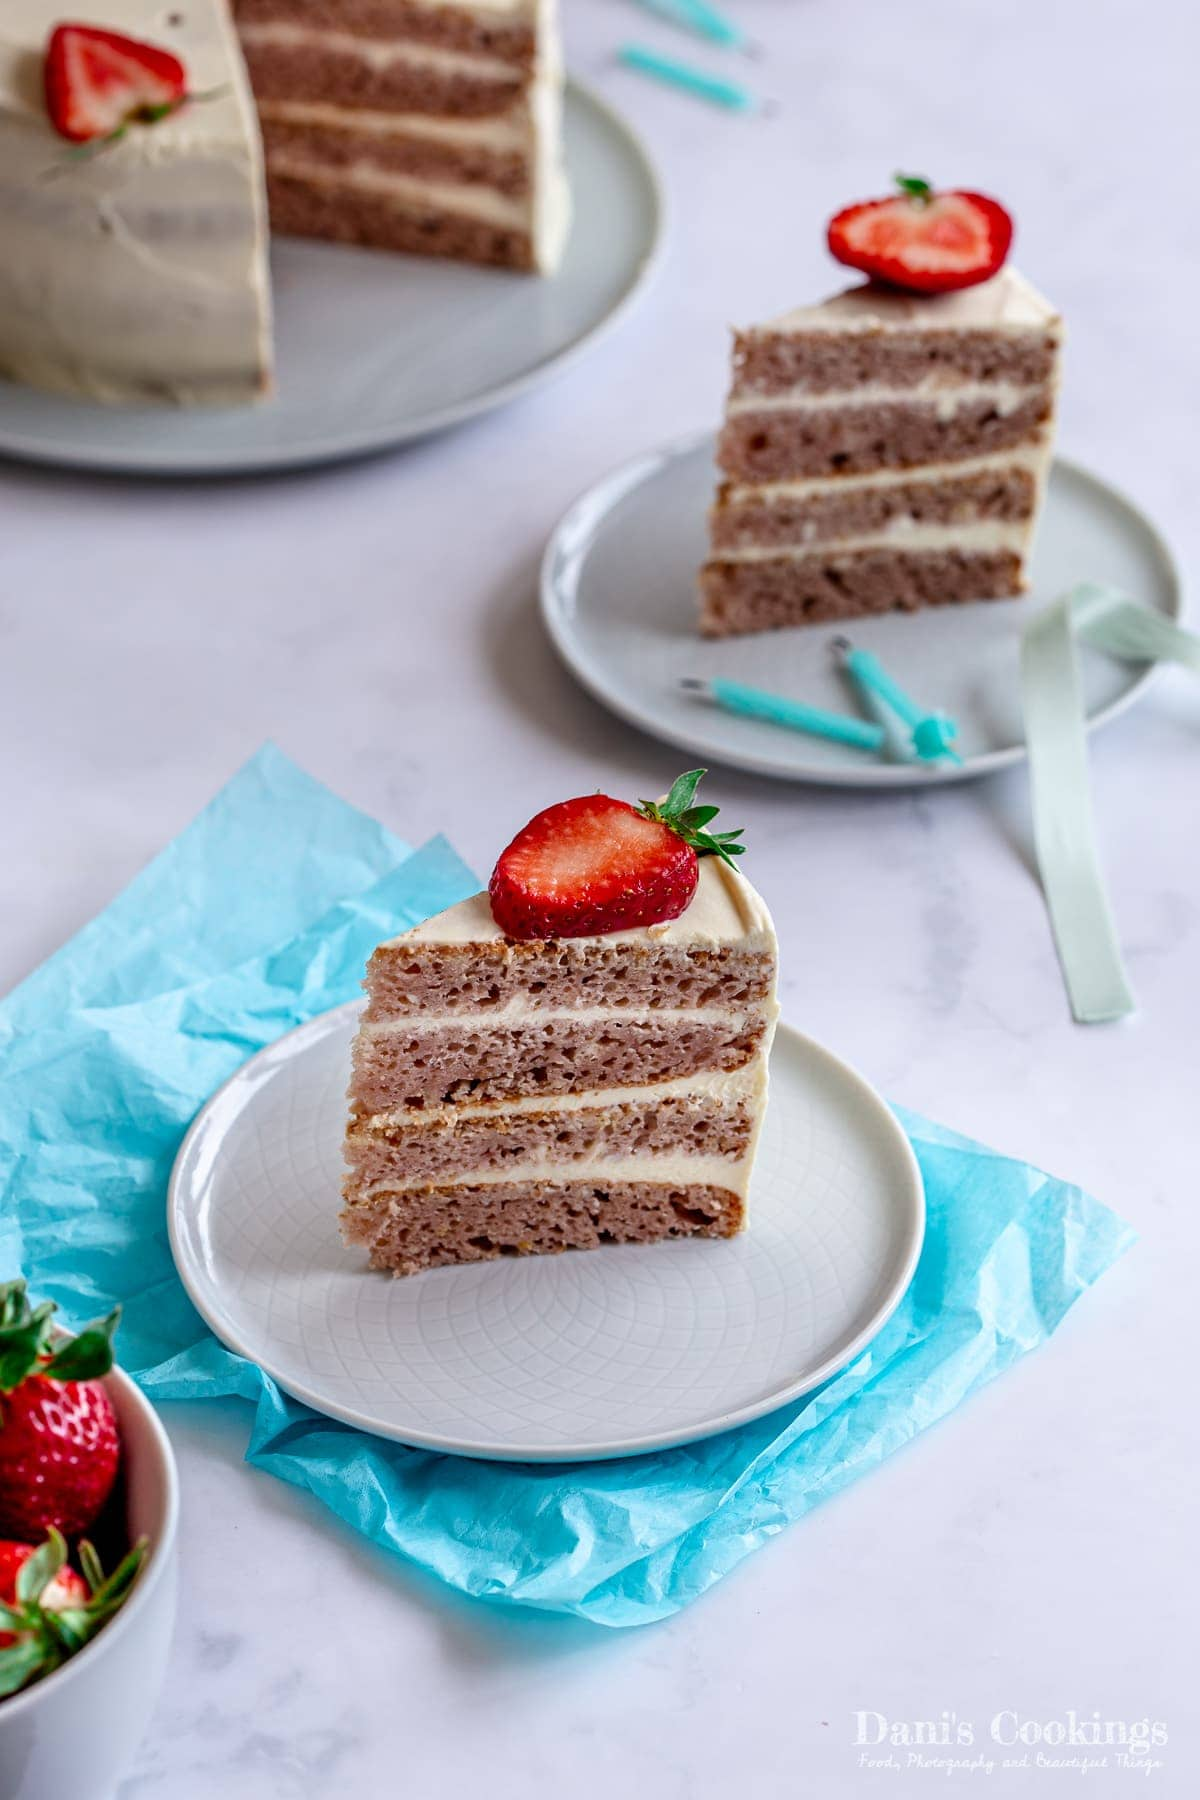 two slices of cake with strawberries